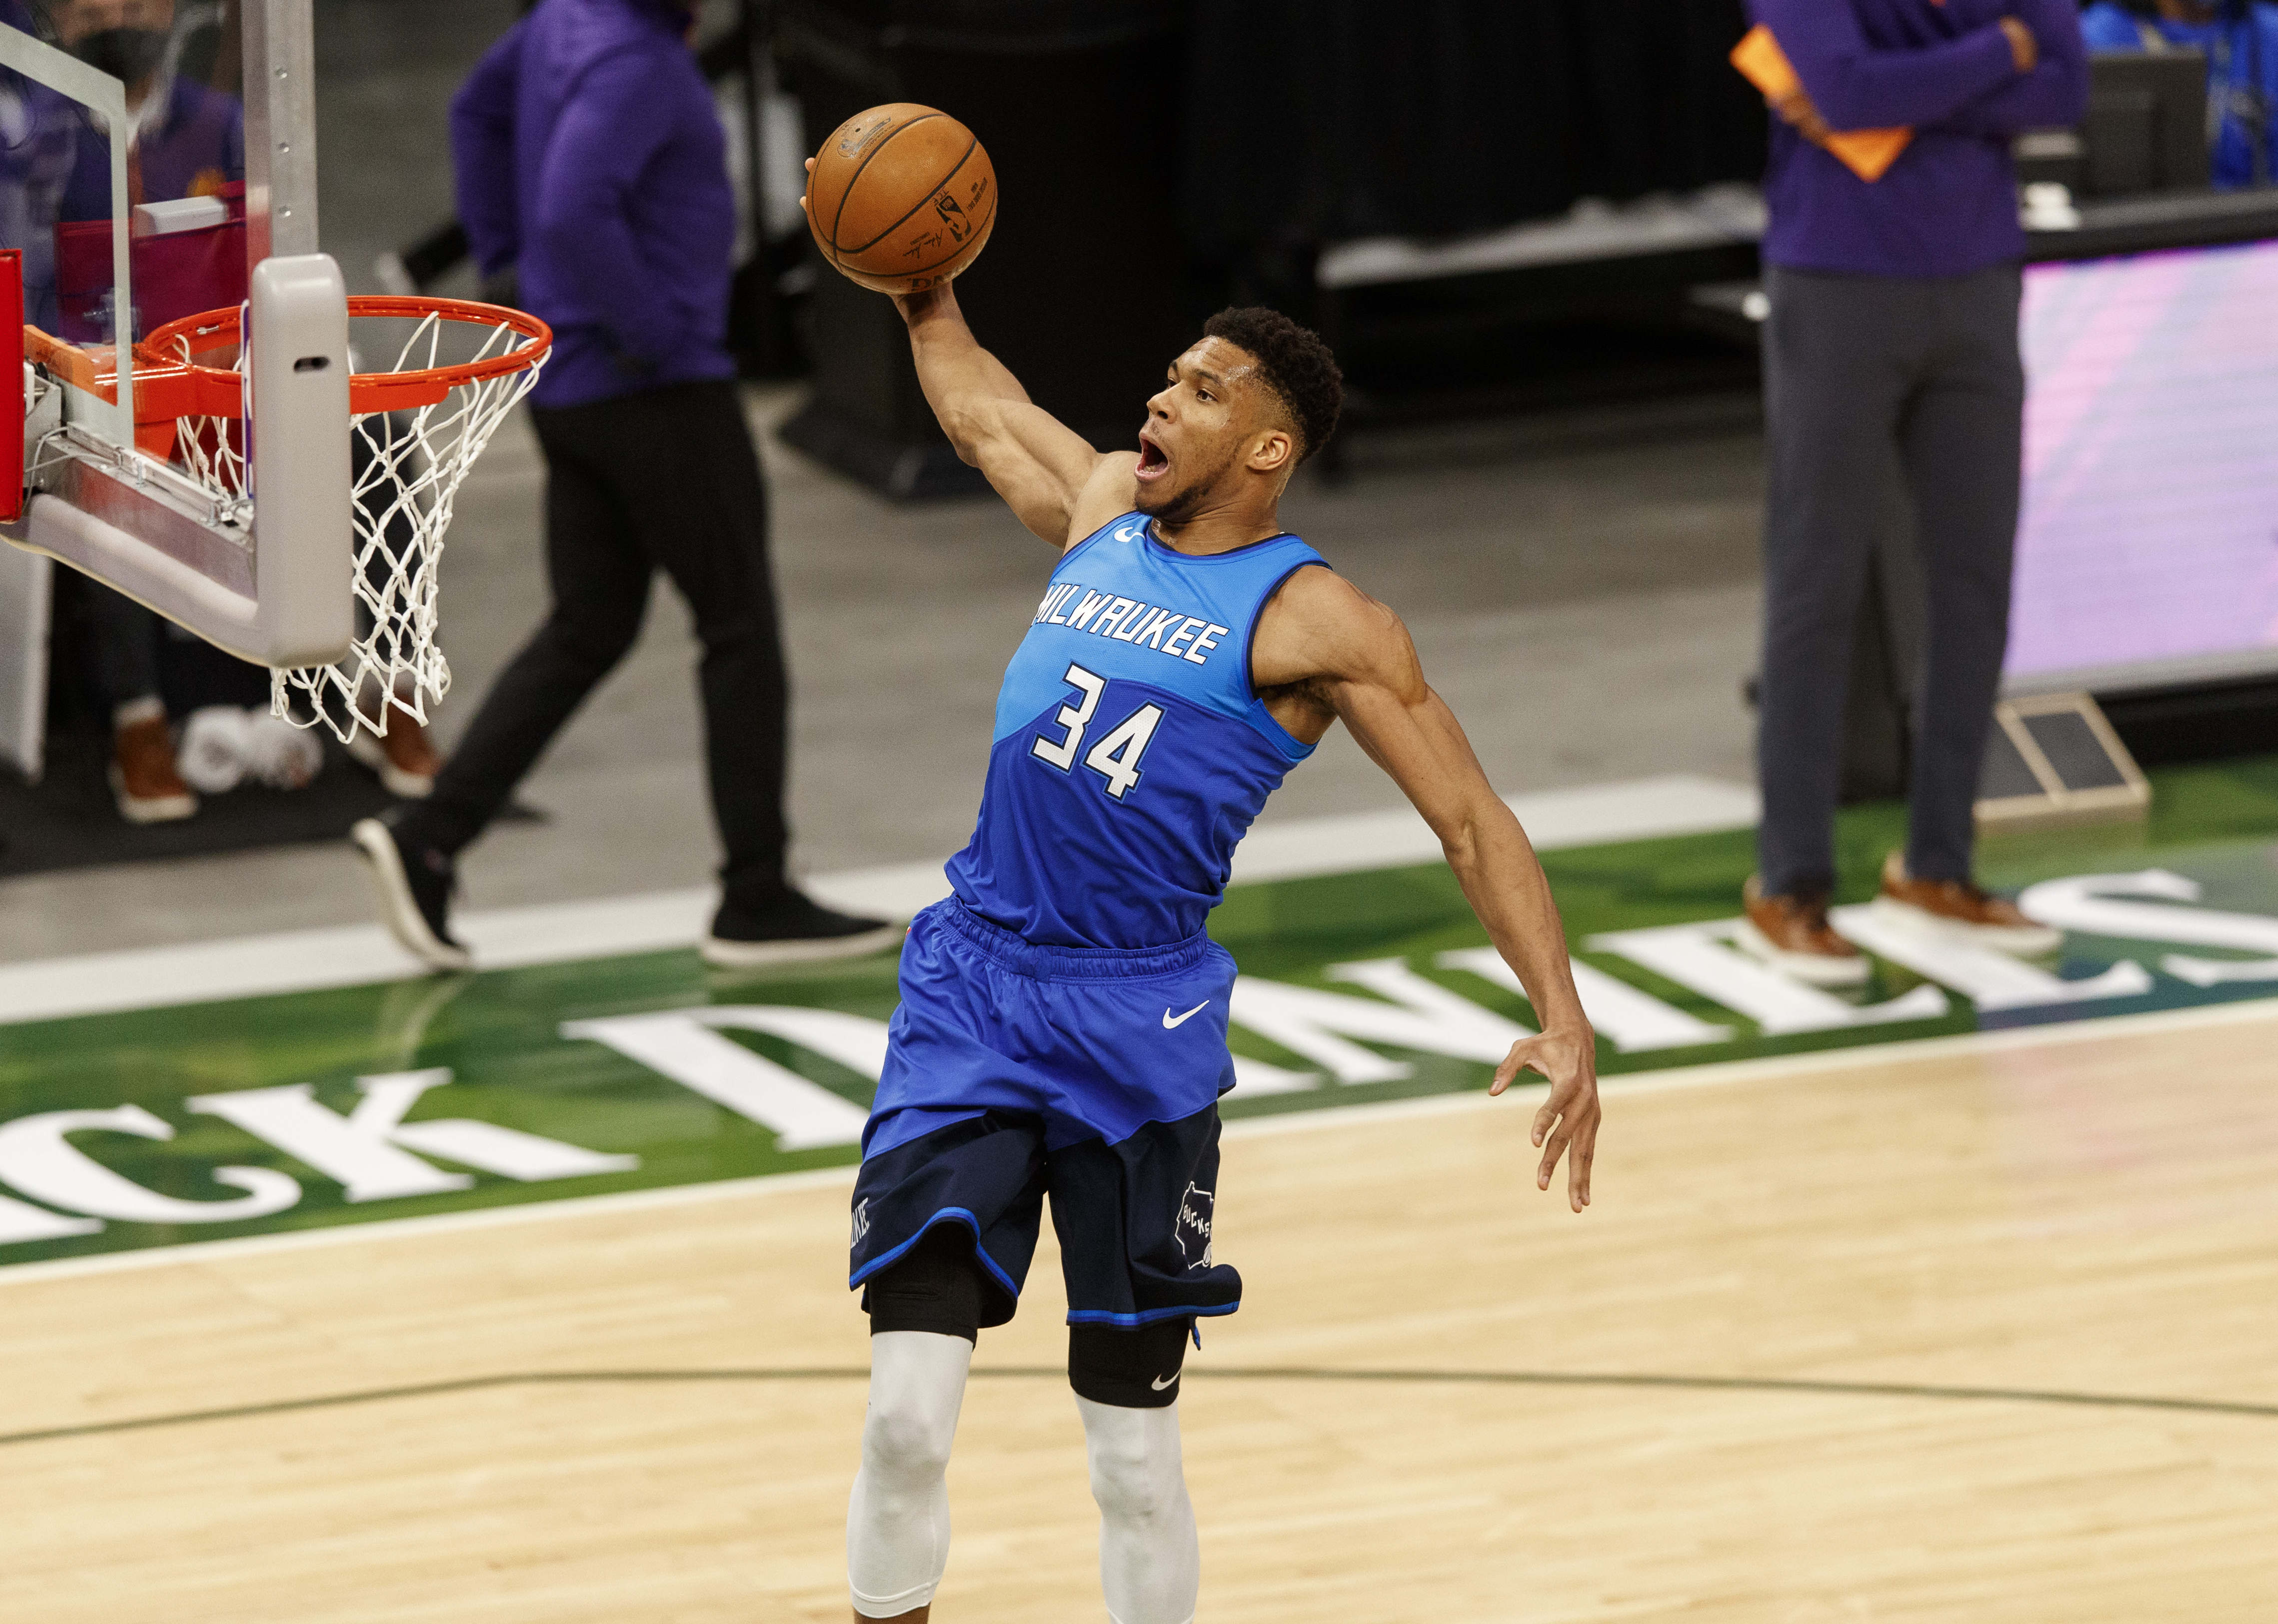 Apr 19, 2021; Milwaukee, Wisconsin, USA; Milwaukee Bucks forward Giannis Antetokounmpo (34) dunks during the first quarter against the Phoenix Suns at Fiserv Forum.